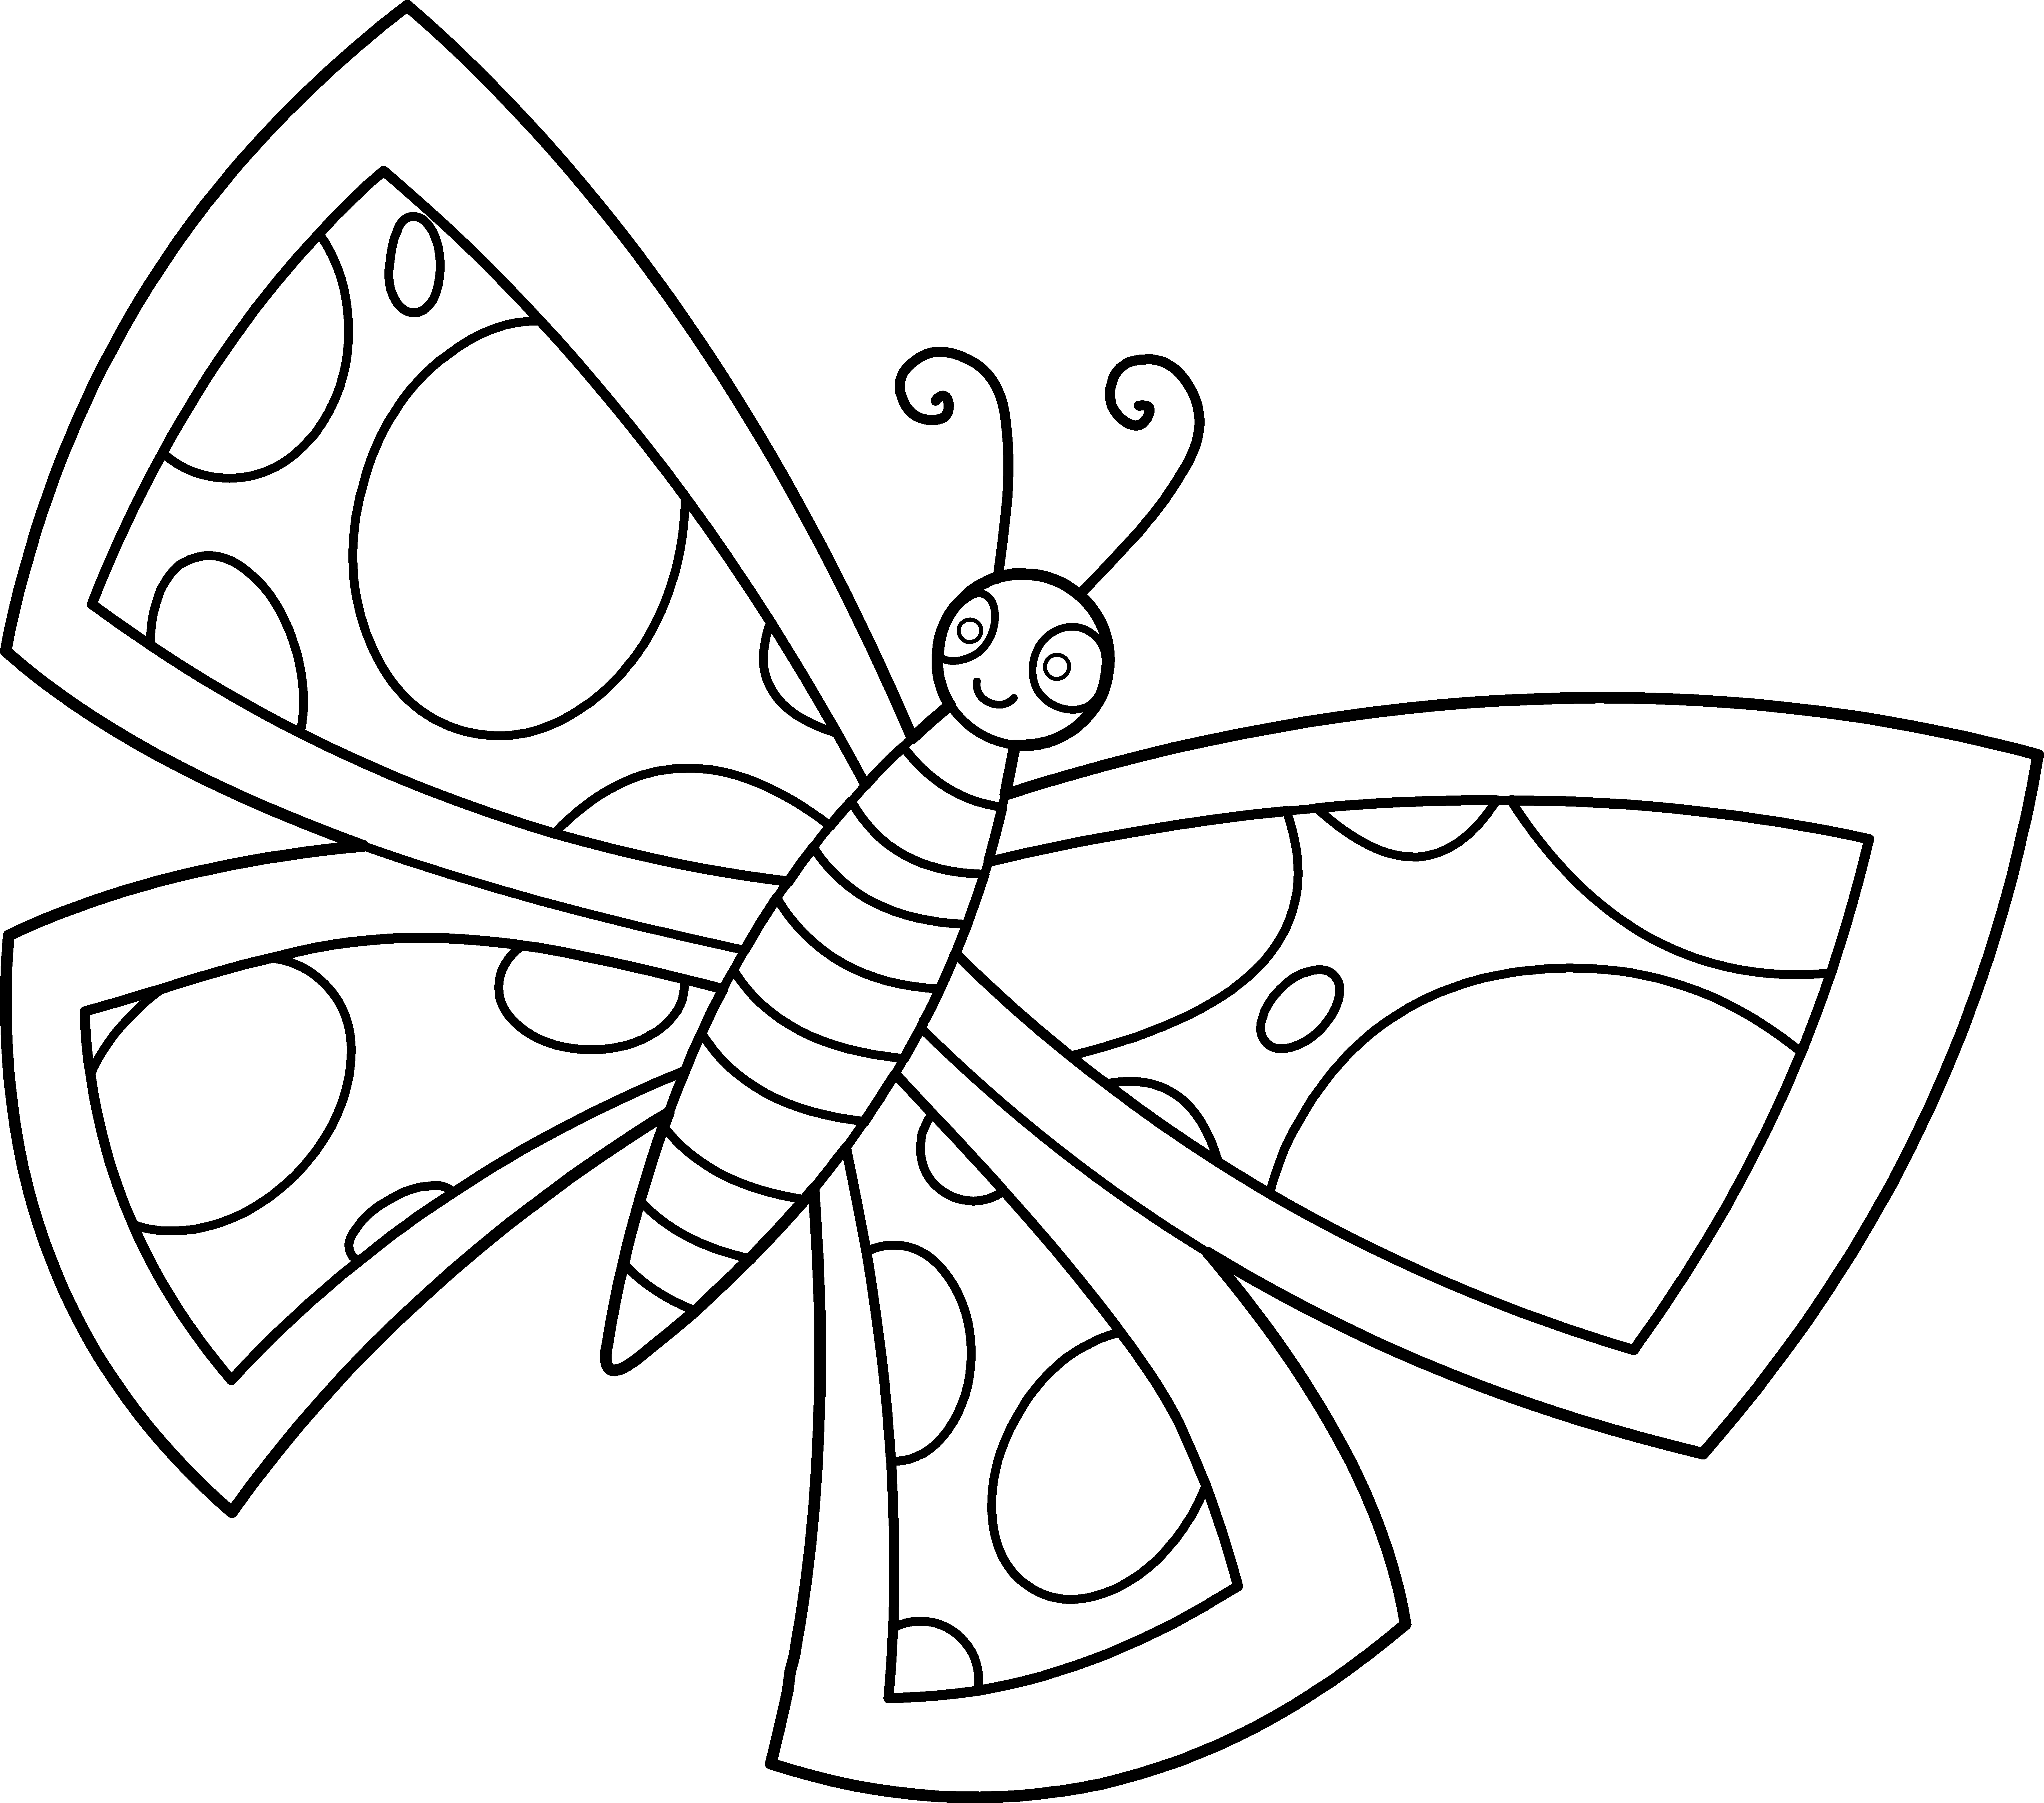 Butterfly Cute Line Art Png 6 694 5 904 Pixels Butterfly